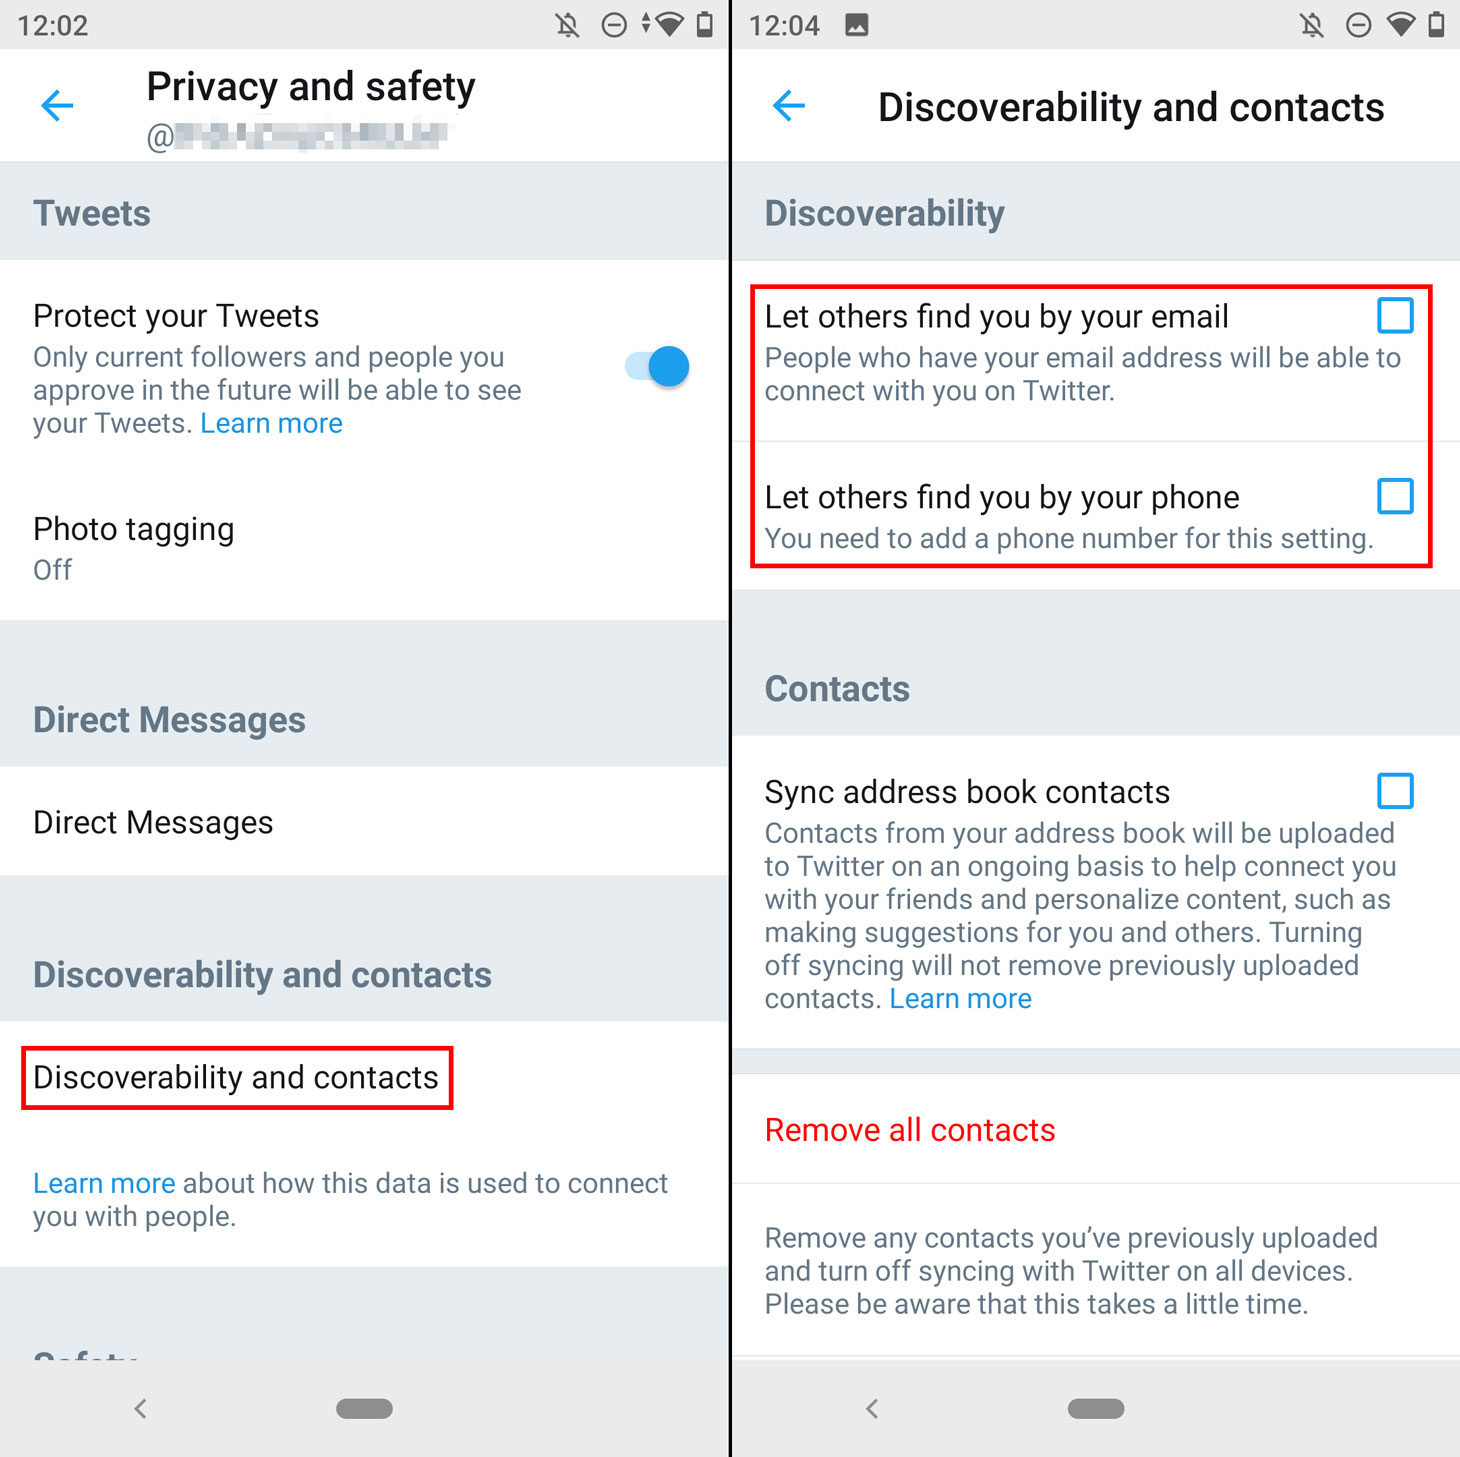 How to keep people from searching for you on Twitter by phone number or e-mail